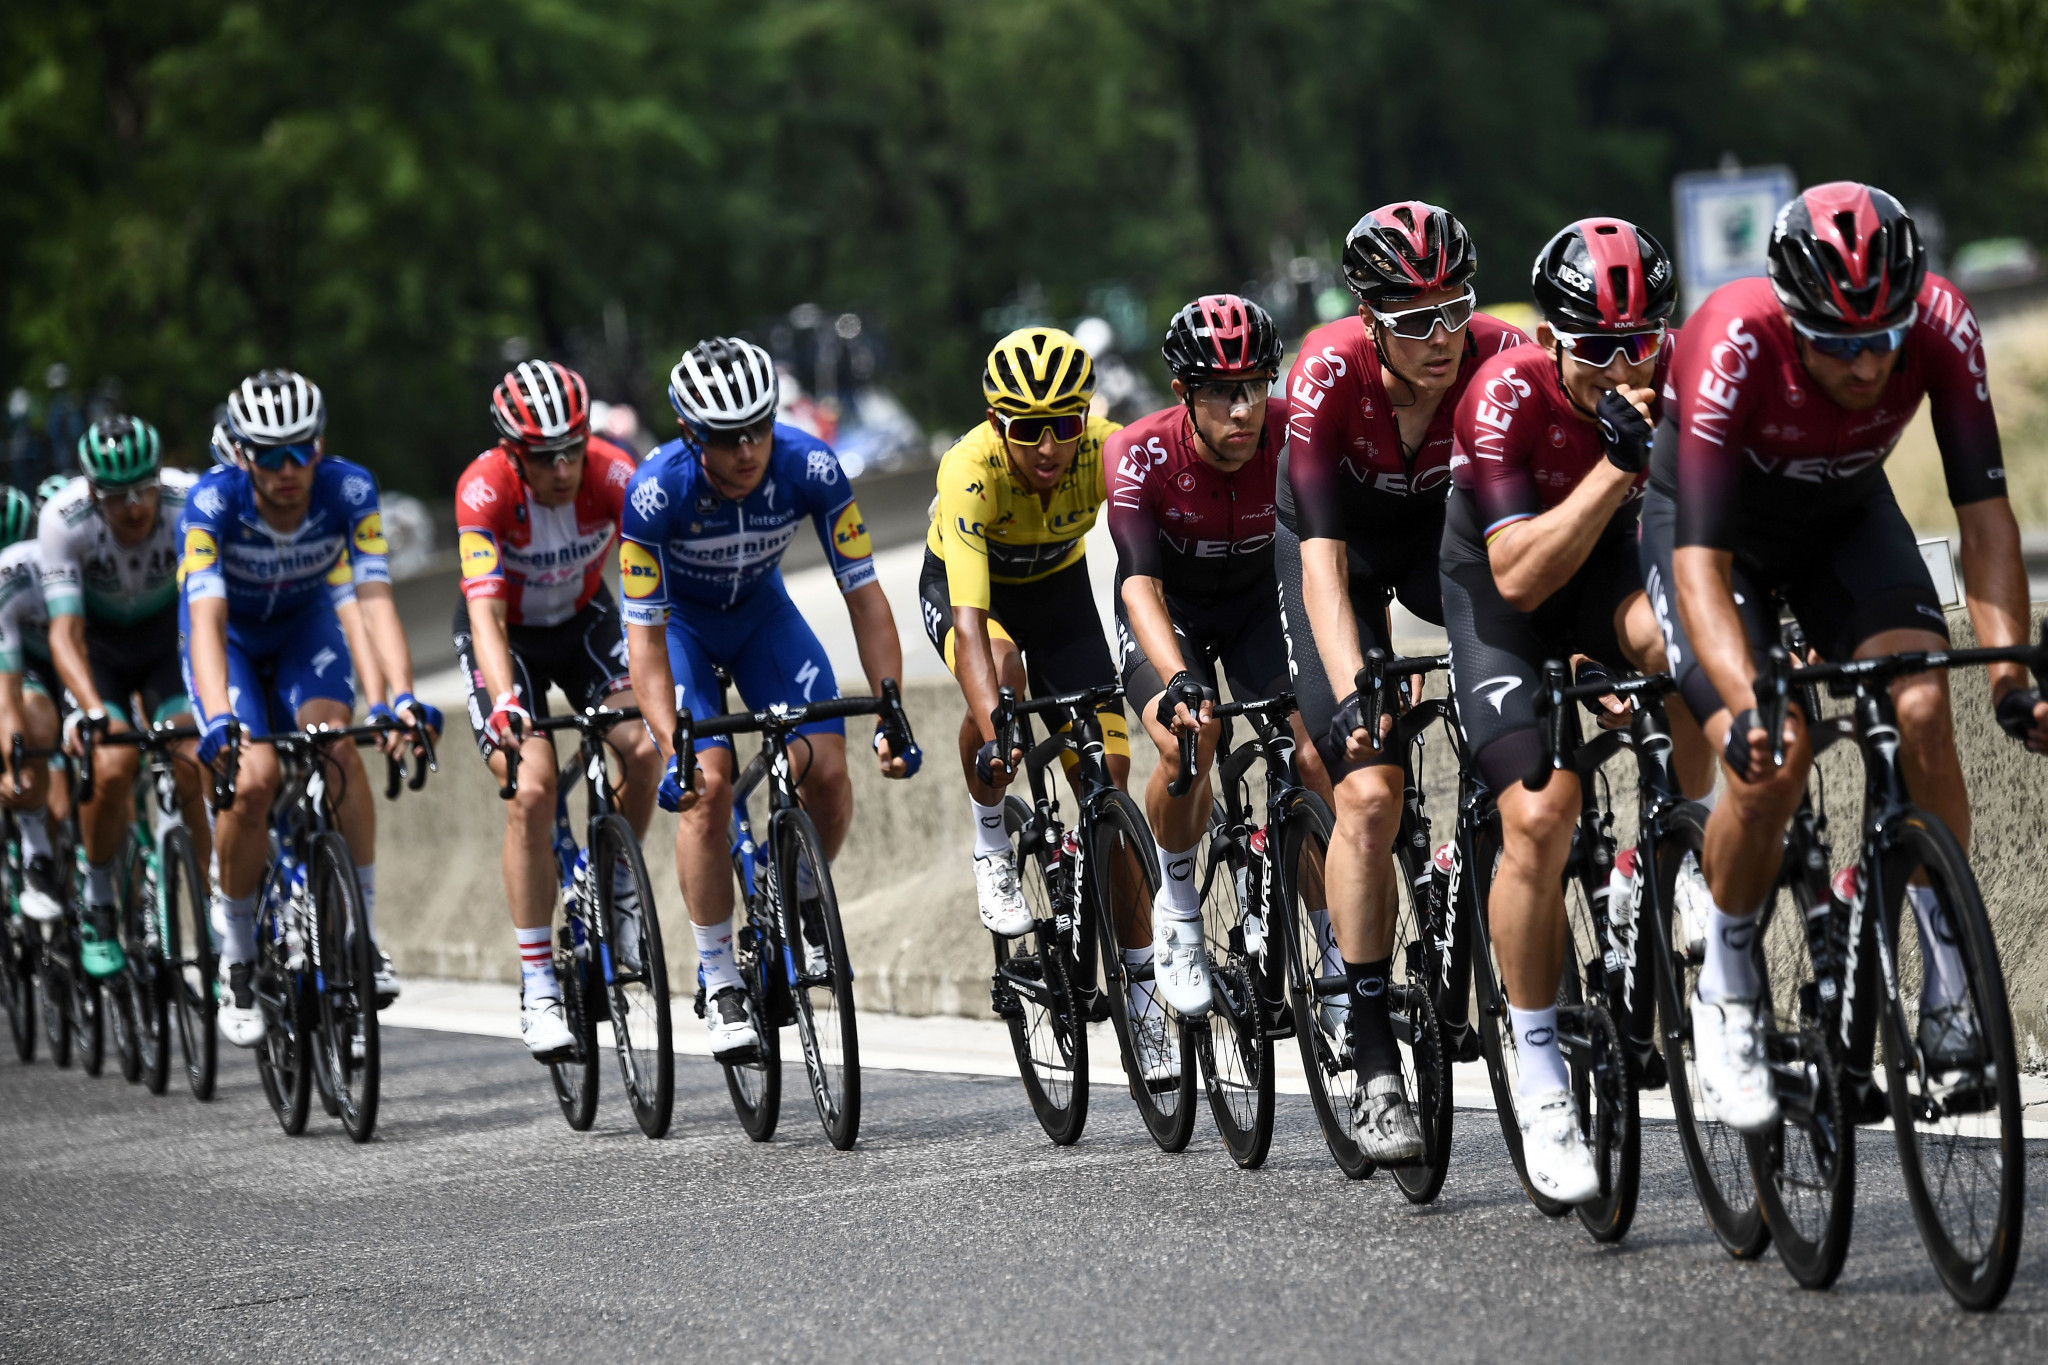 The road cycling survey revealed fears of team domination ©Getty Images